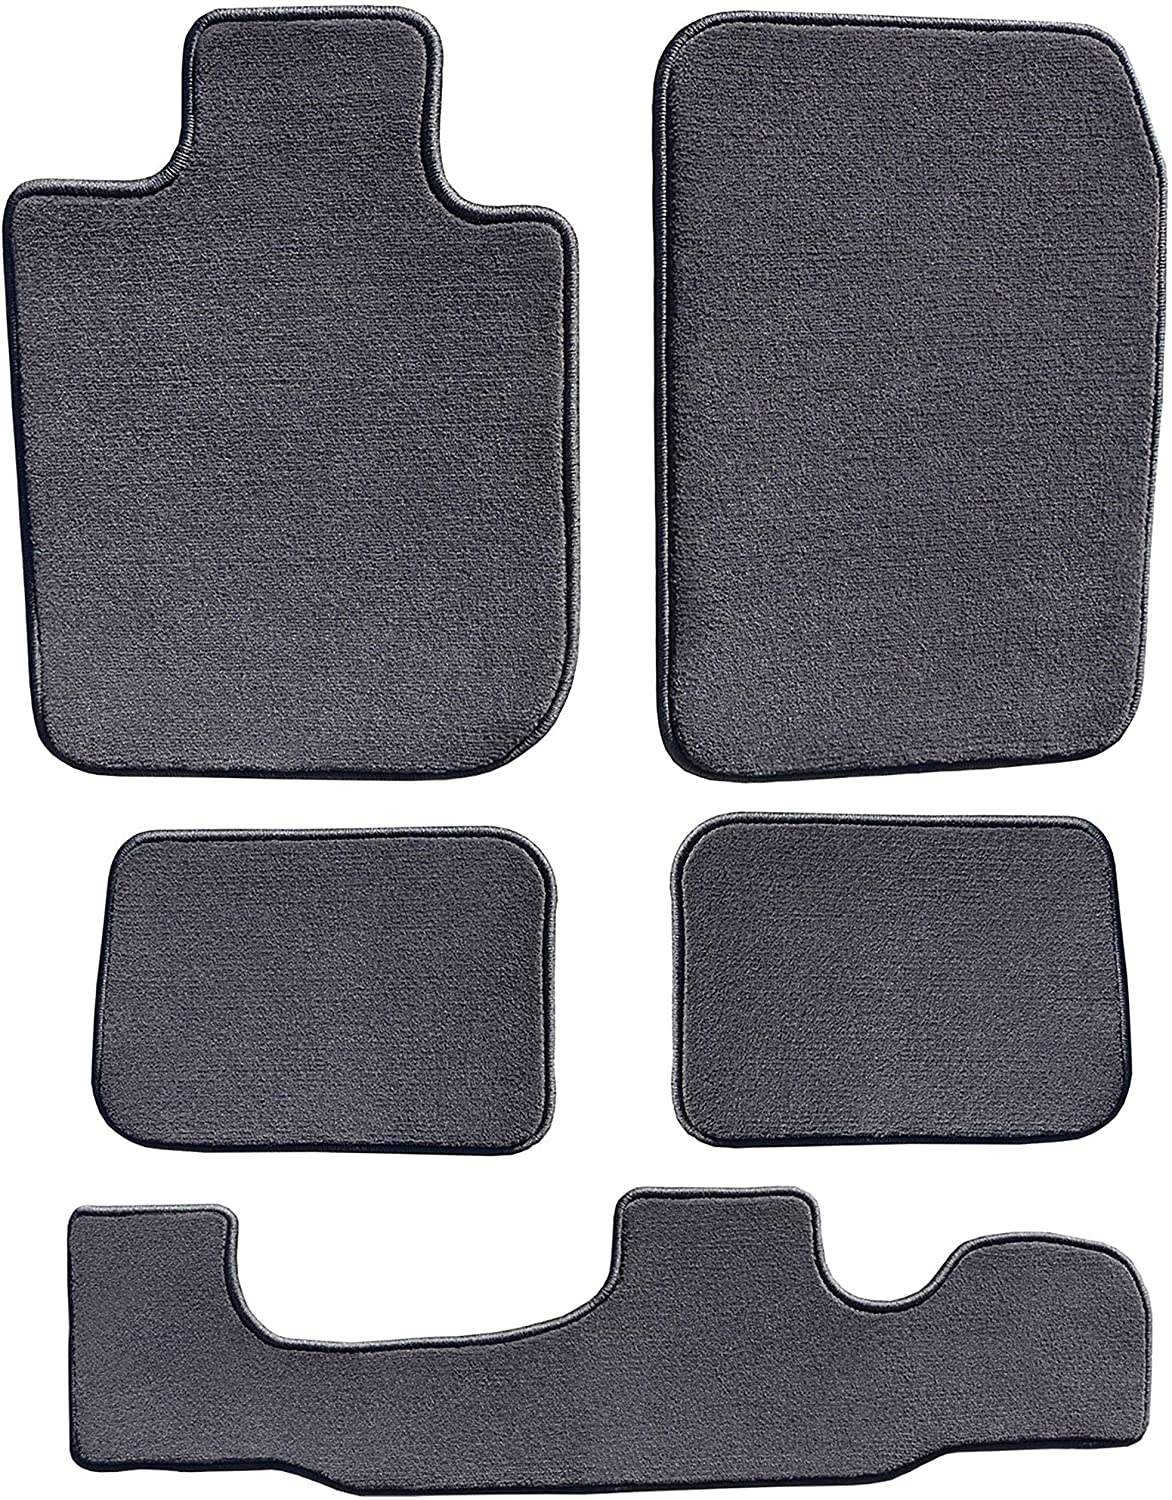 GGBAILEY Charcoal Driver, Passenger, 2nd and 3rd Row Floor Mats Custom-Fit for Chrysler Pacifica 2017-2018